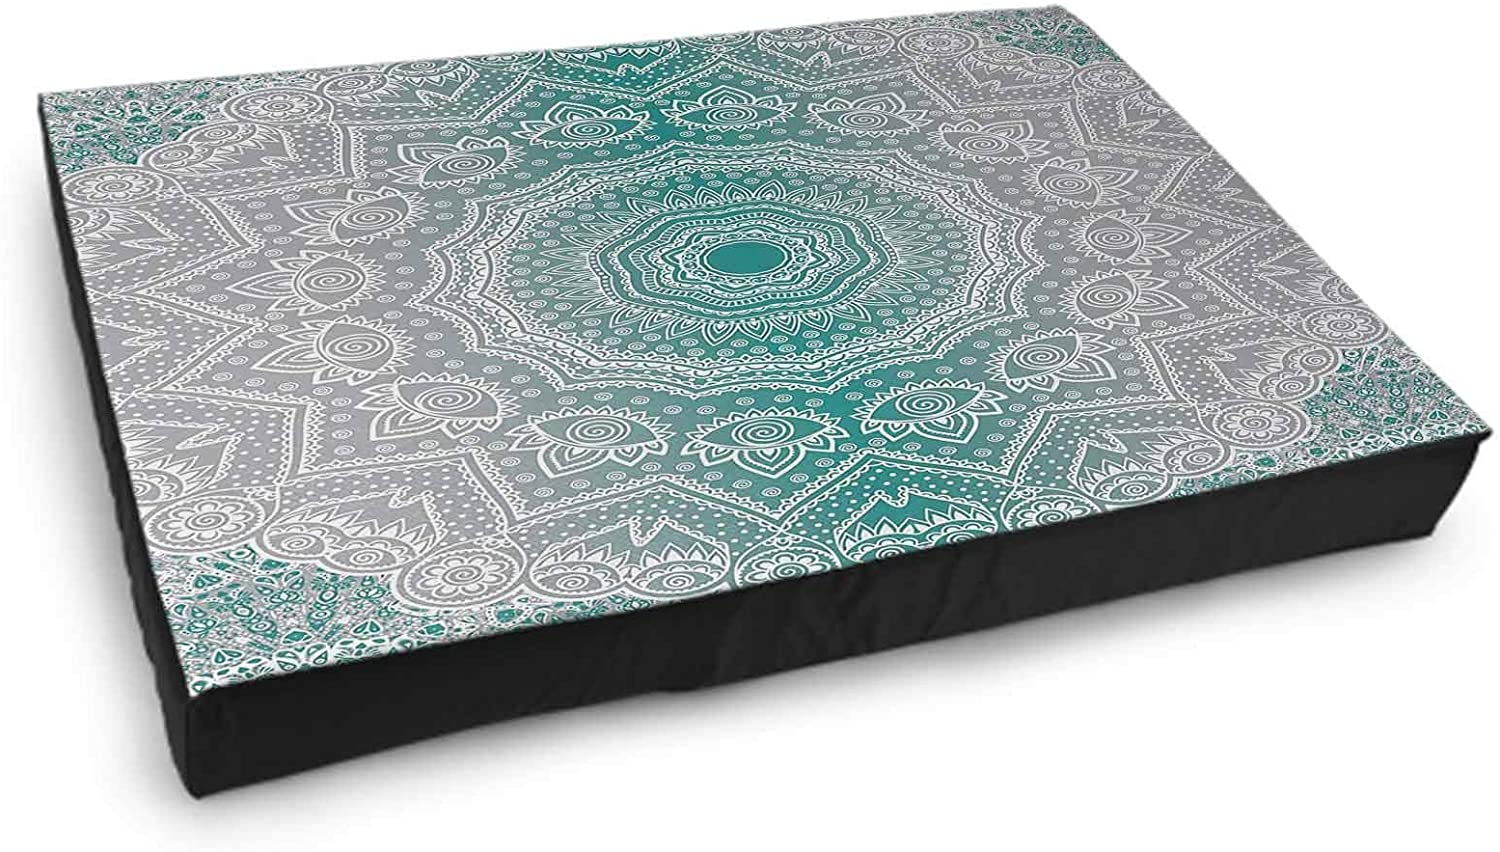 Interestlee Puppy Beds Small, Grey and Teal Custom Dog Bed - Ombre Geometry Occult Pattern with Flower Lines Display Artwork 15